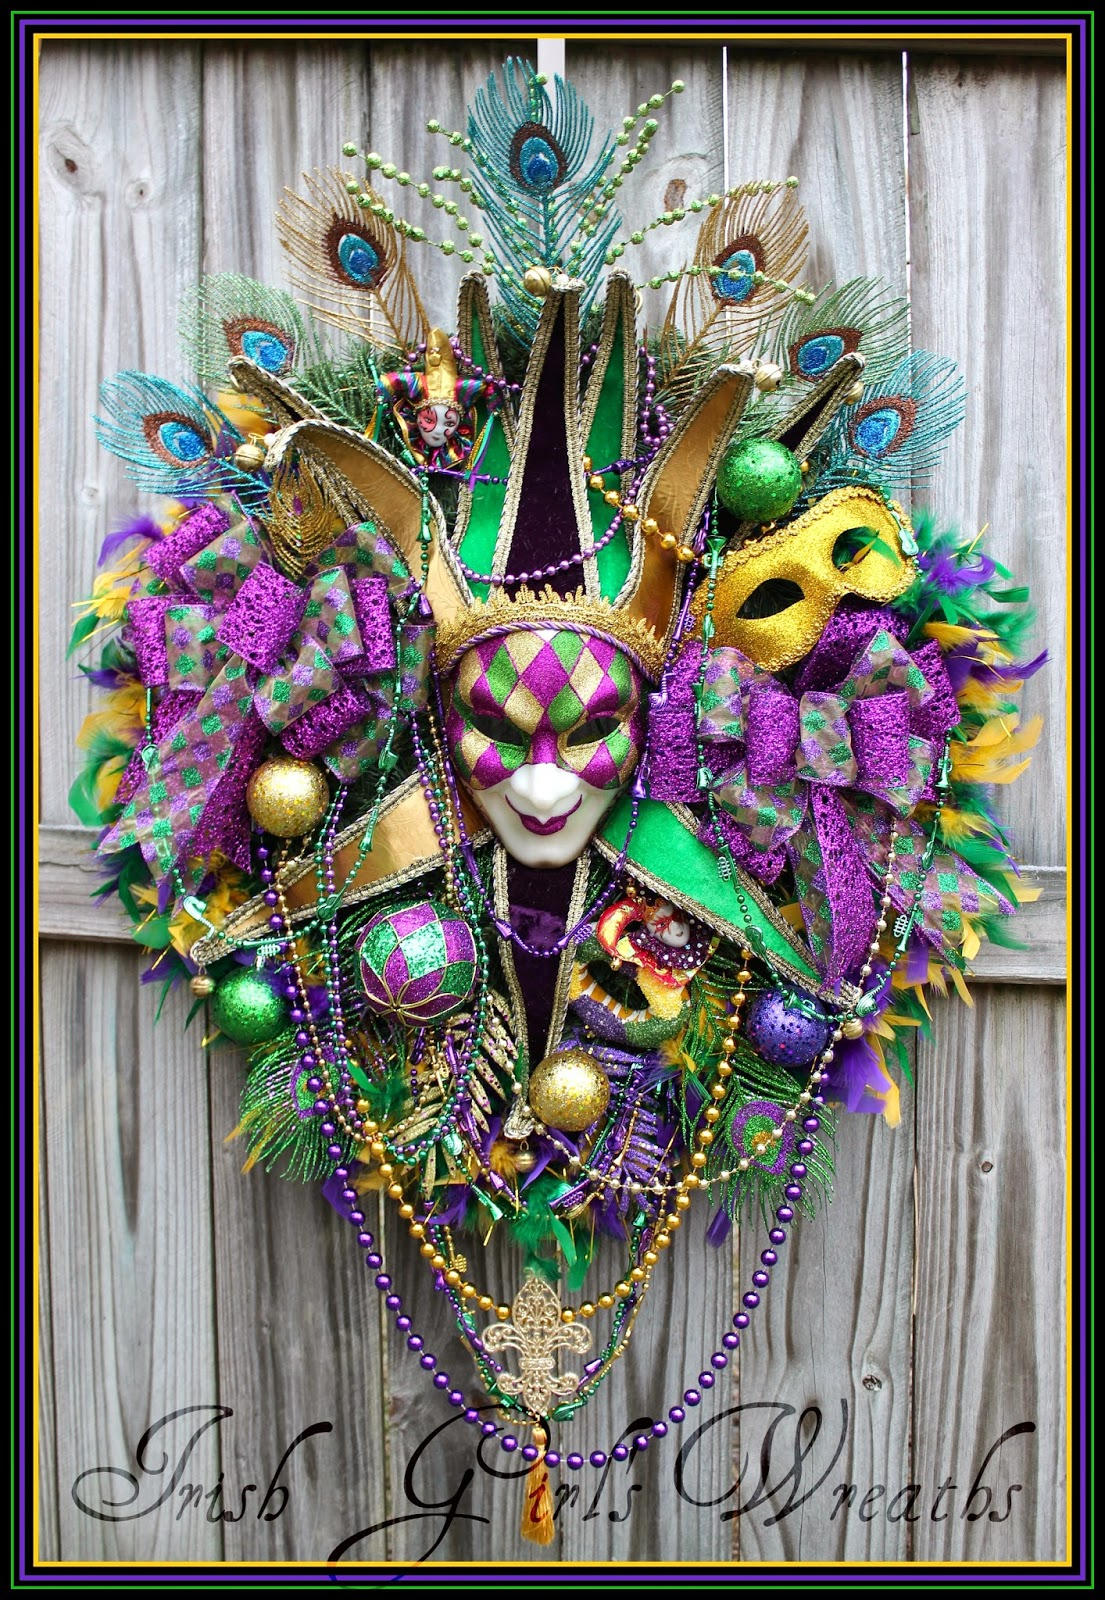 HUGE Harlequin Jester Mask Mardi Gras Carnival Wreath